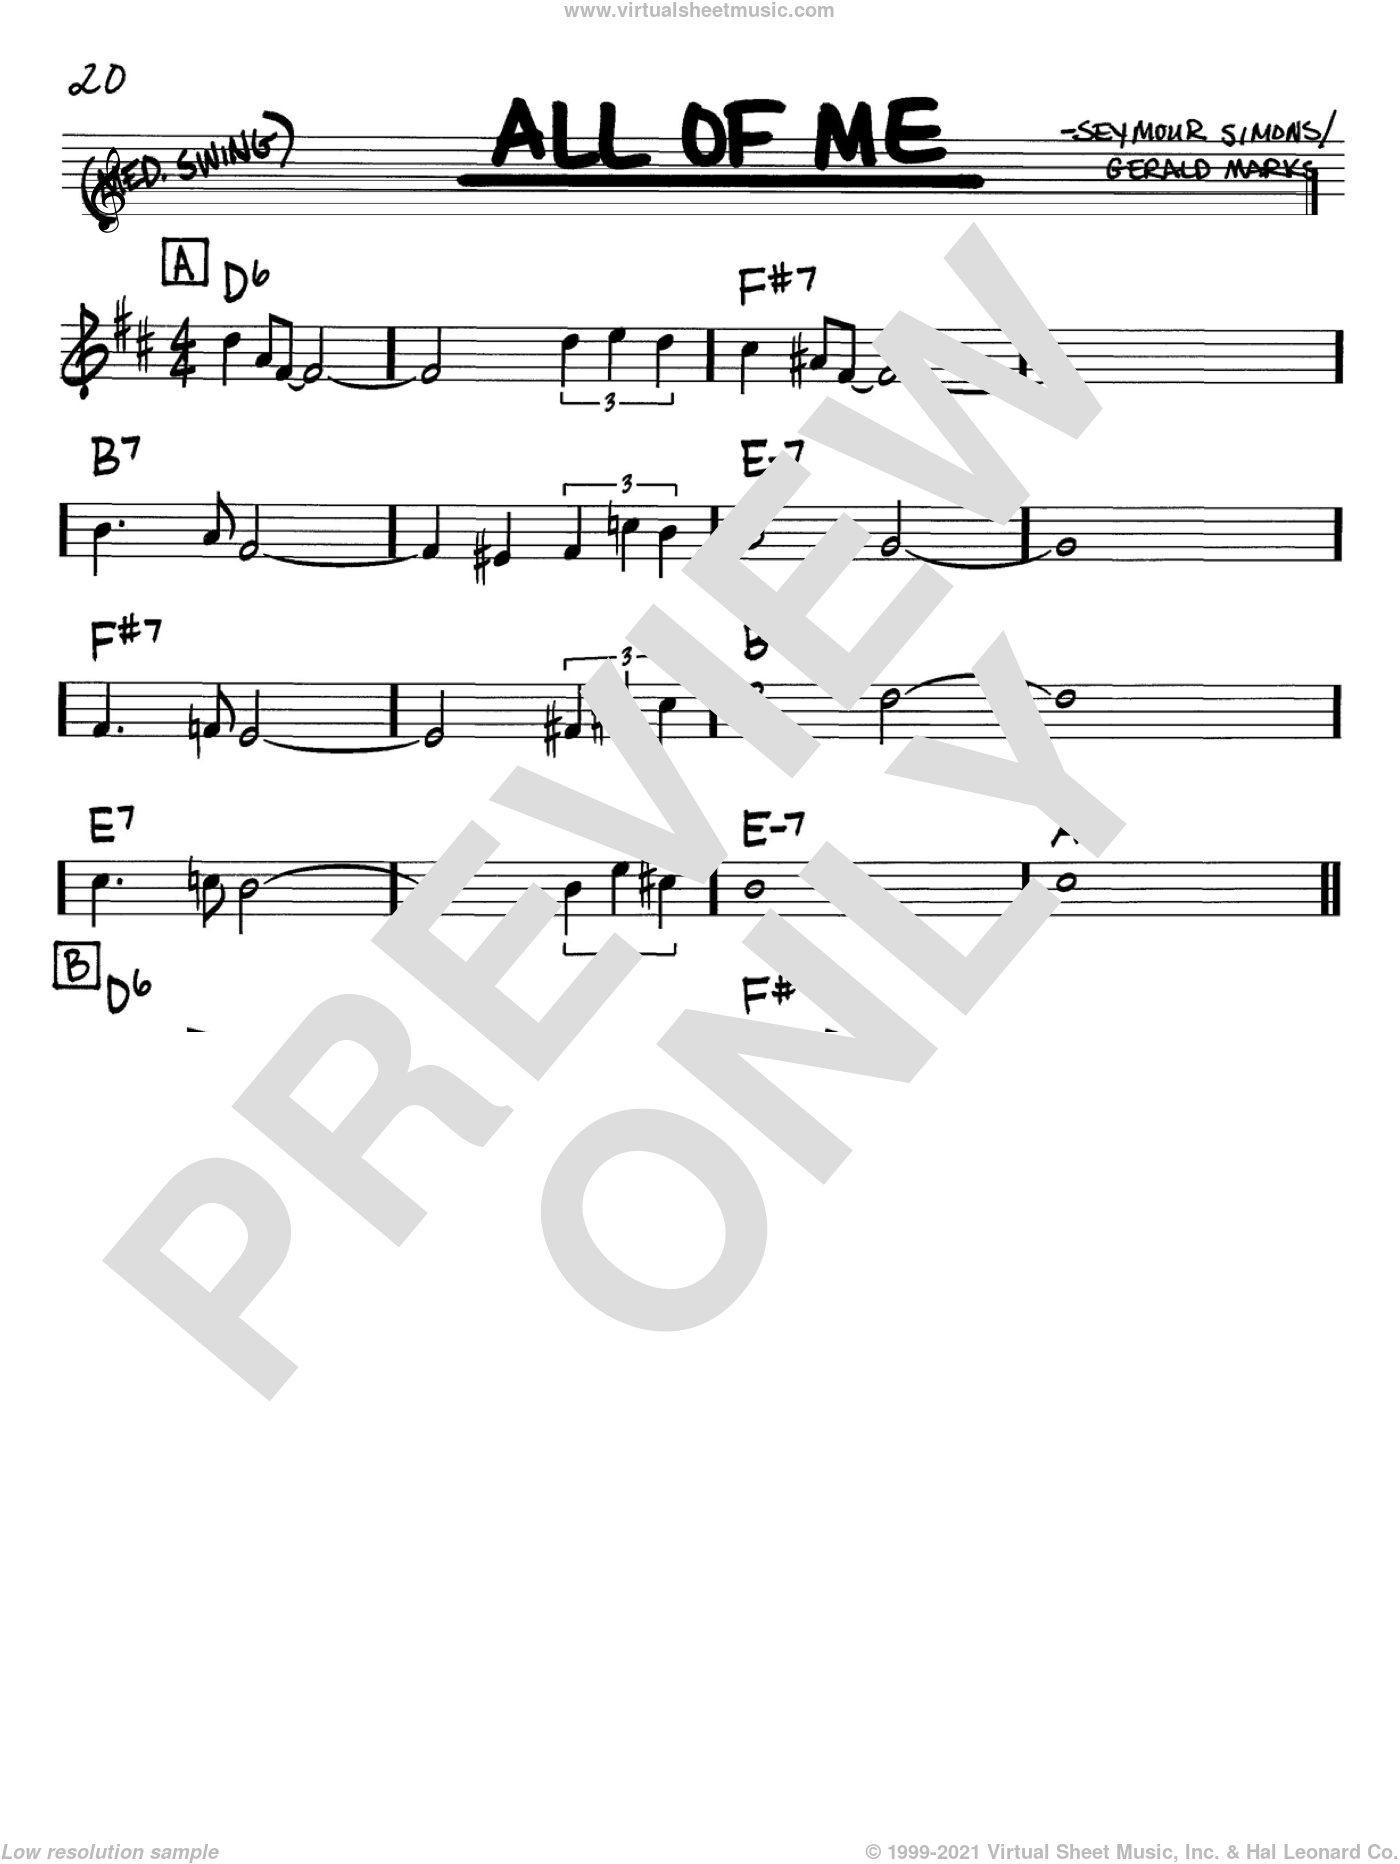 All Of Me sheet music for voice and other instruments (in Bb) by Louis Armstrong, Frank Sinatra, Willie Nelson, Gerald Marks and Seymour Simons, intermediate skill level